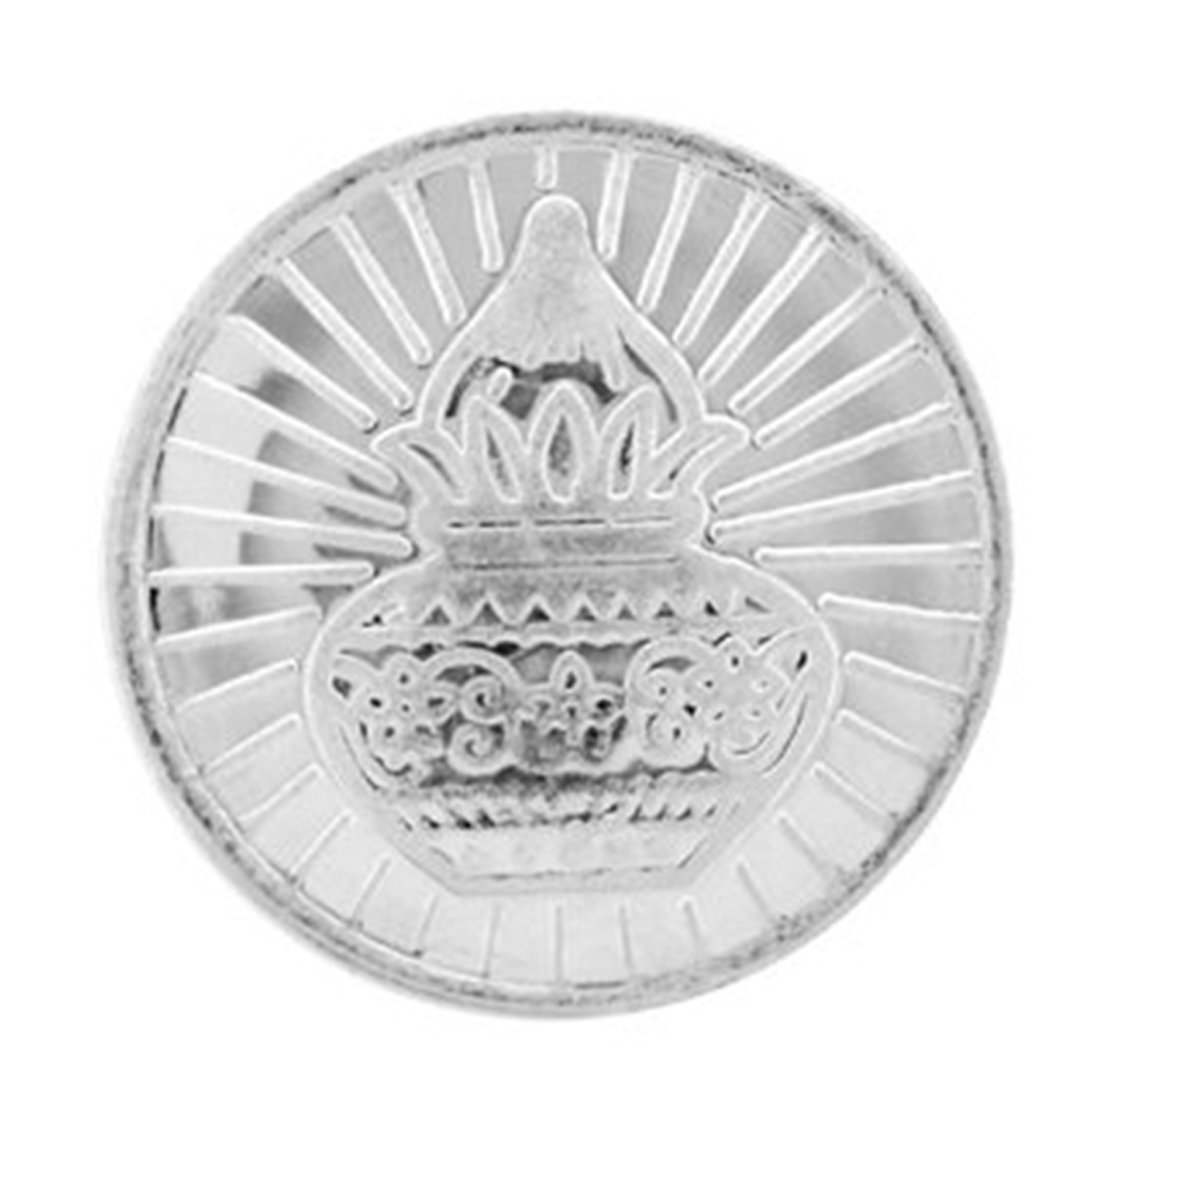 Ananth Jewels BIS Hallmarked 999 Purity Silver Coin Kalash And Swastik 1 Gram x Pack of 5